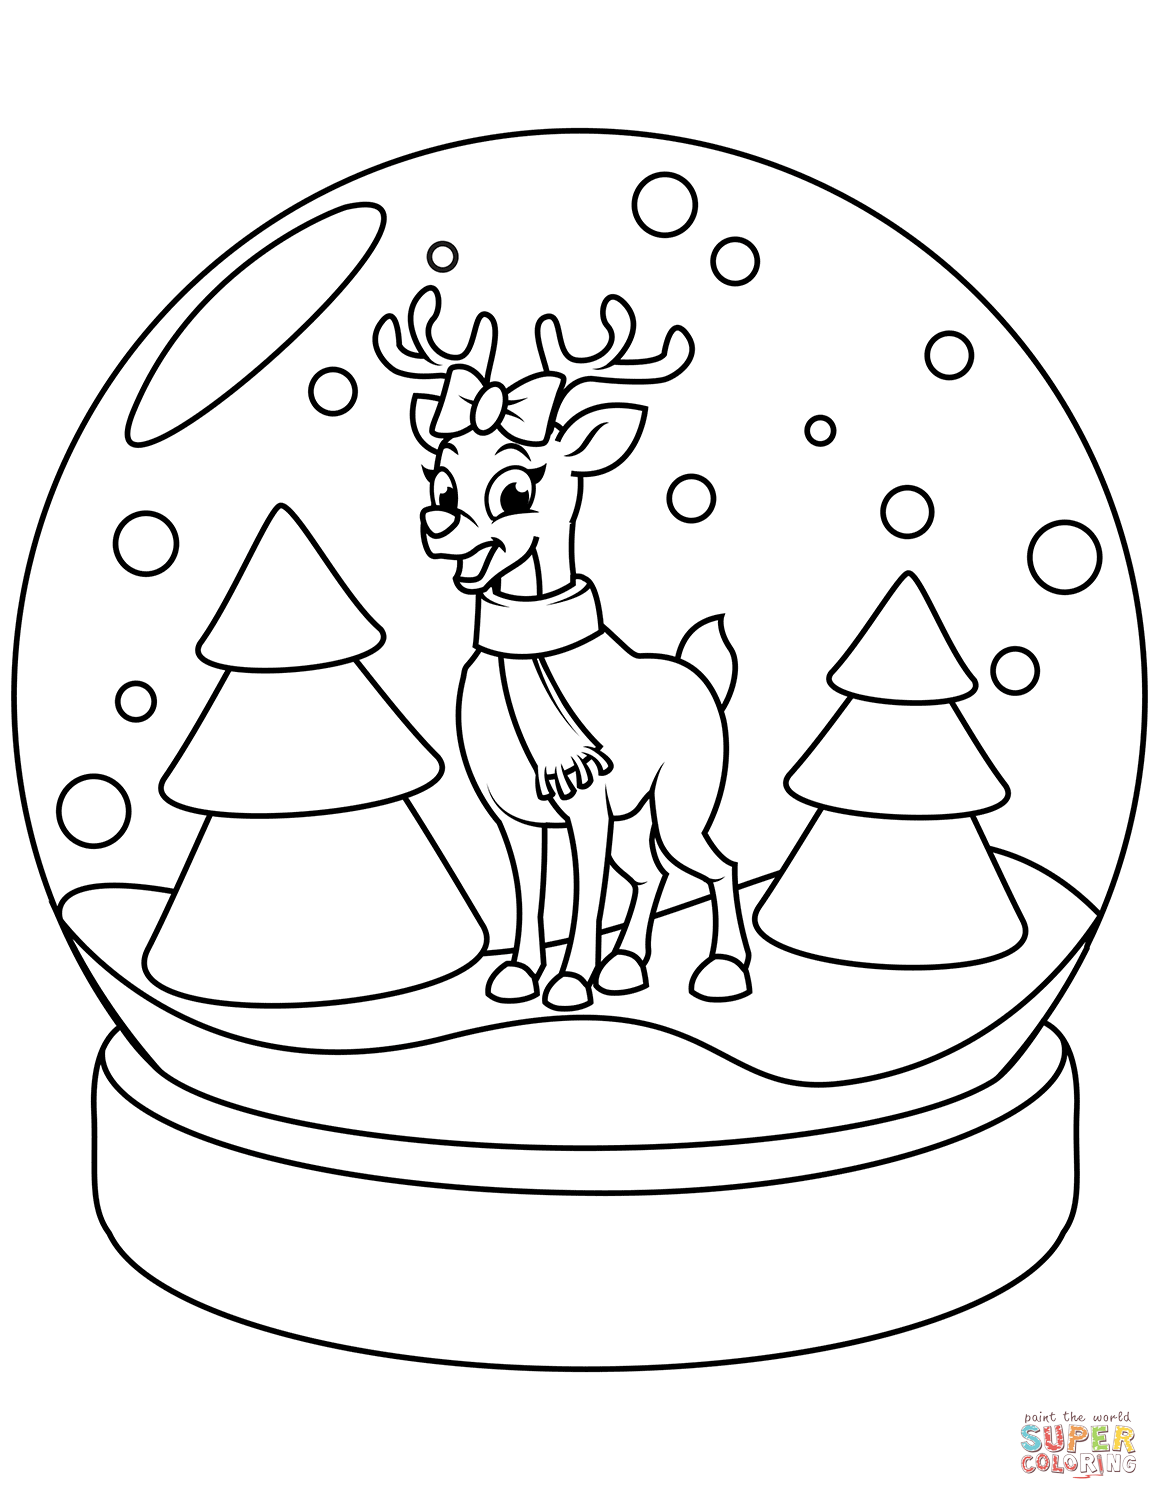 Vysledek Obrazku Pro Weihnachten Fensterbild Rudolph Coloring Pages Christmas Snow Globes Printable Christmas Coloring Pages